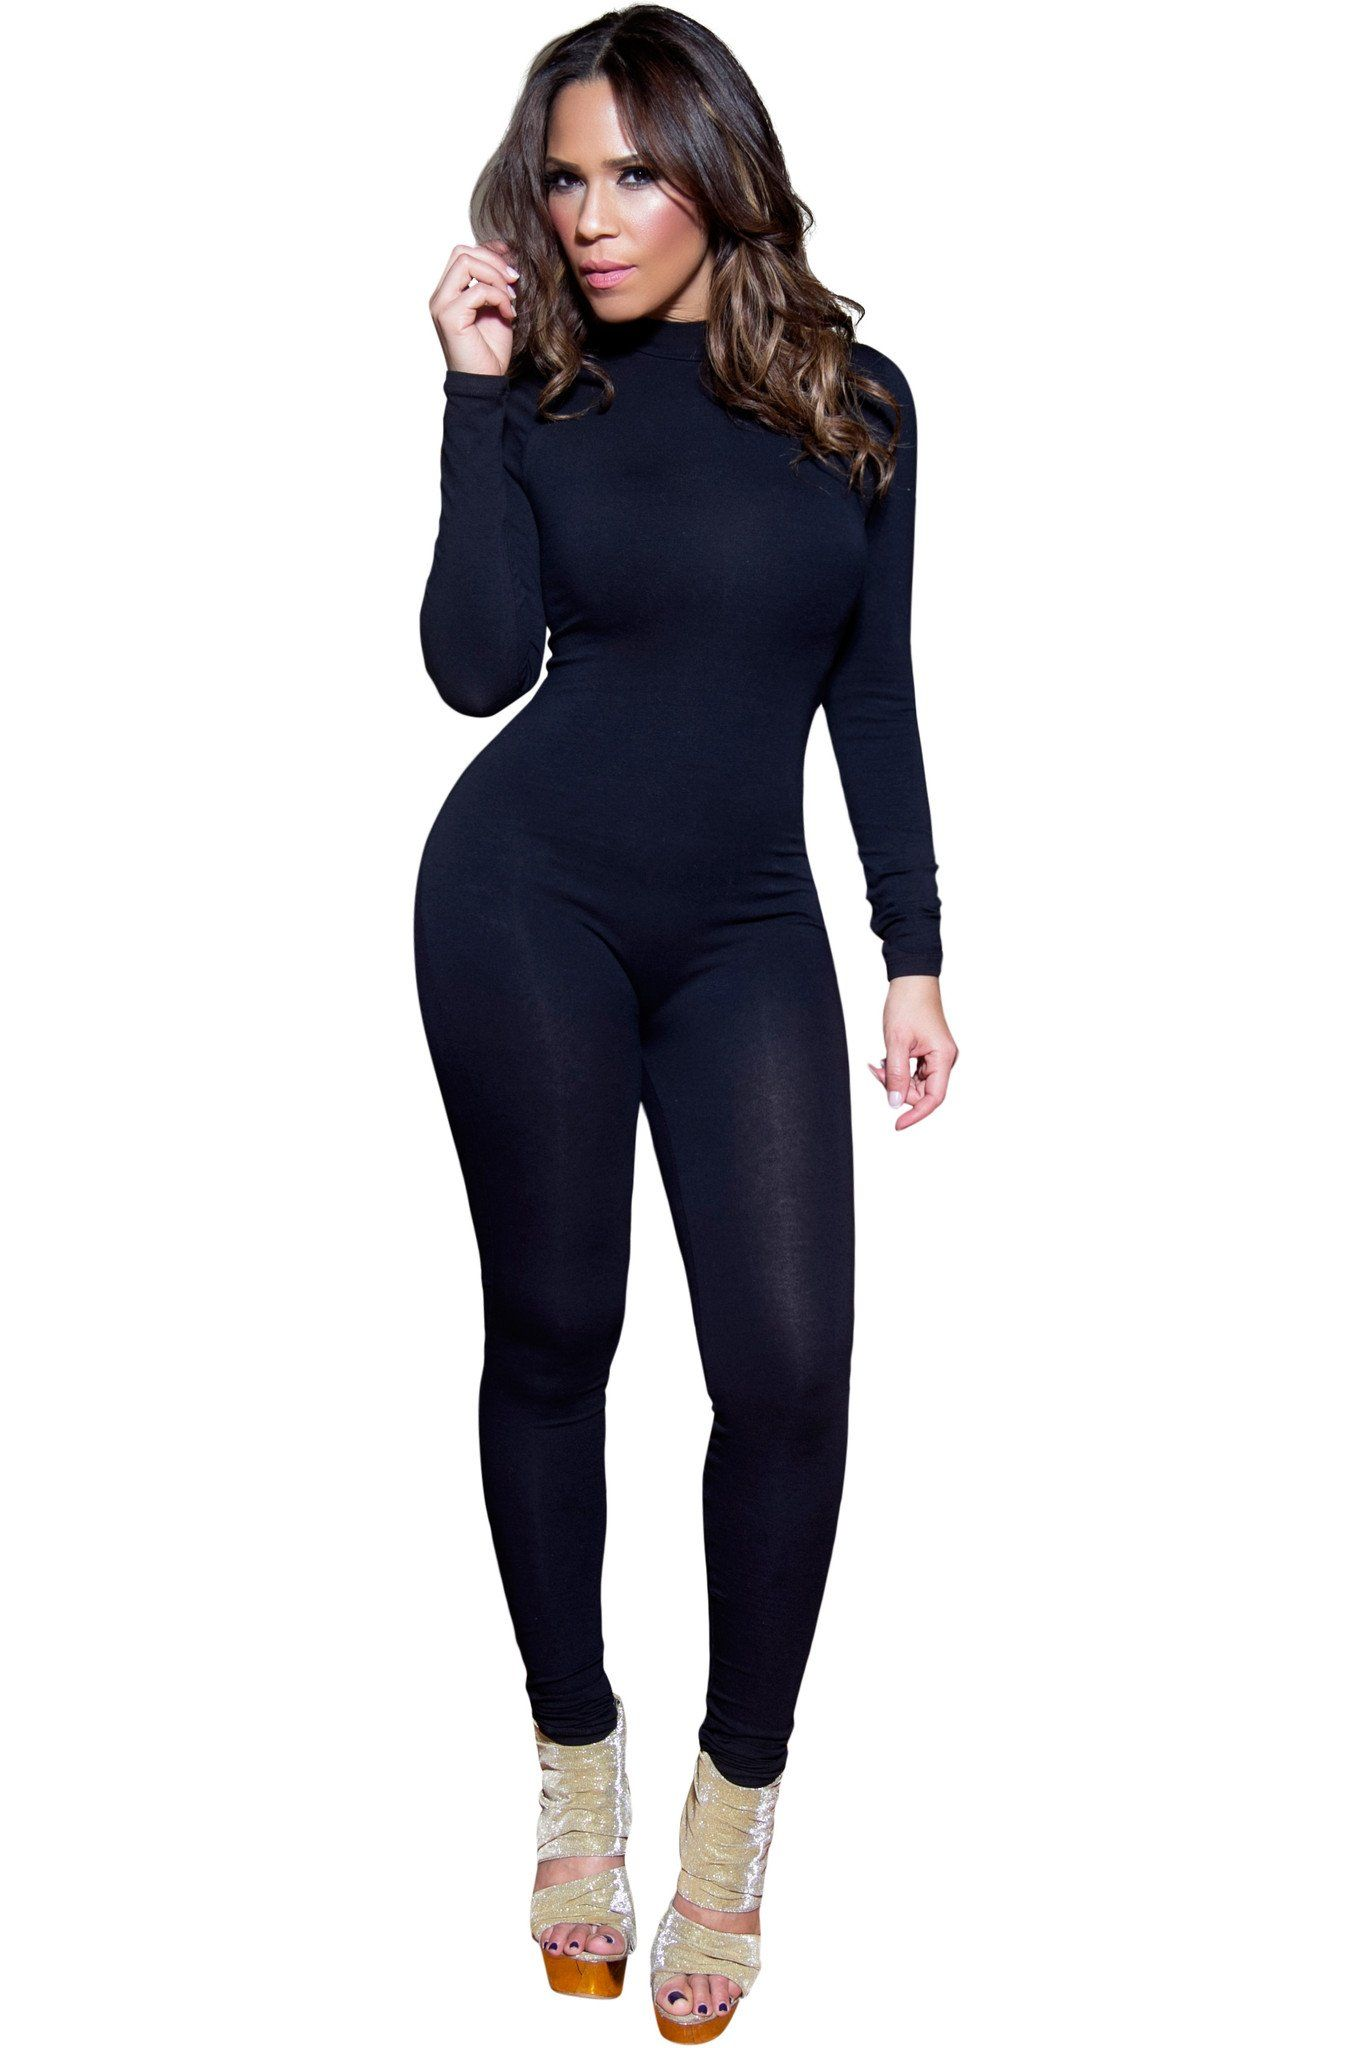 01564d63a1 Sexy Black Mockneck Long Sleeved Full Length Bodysuit